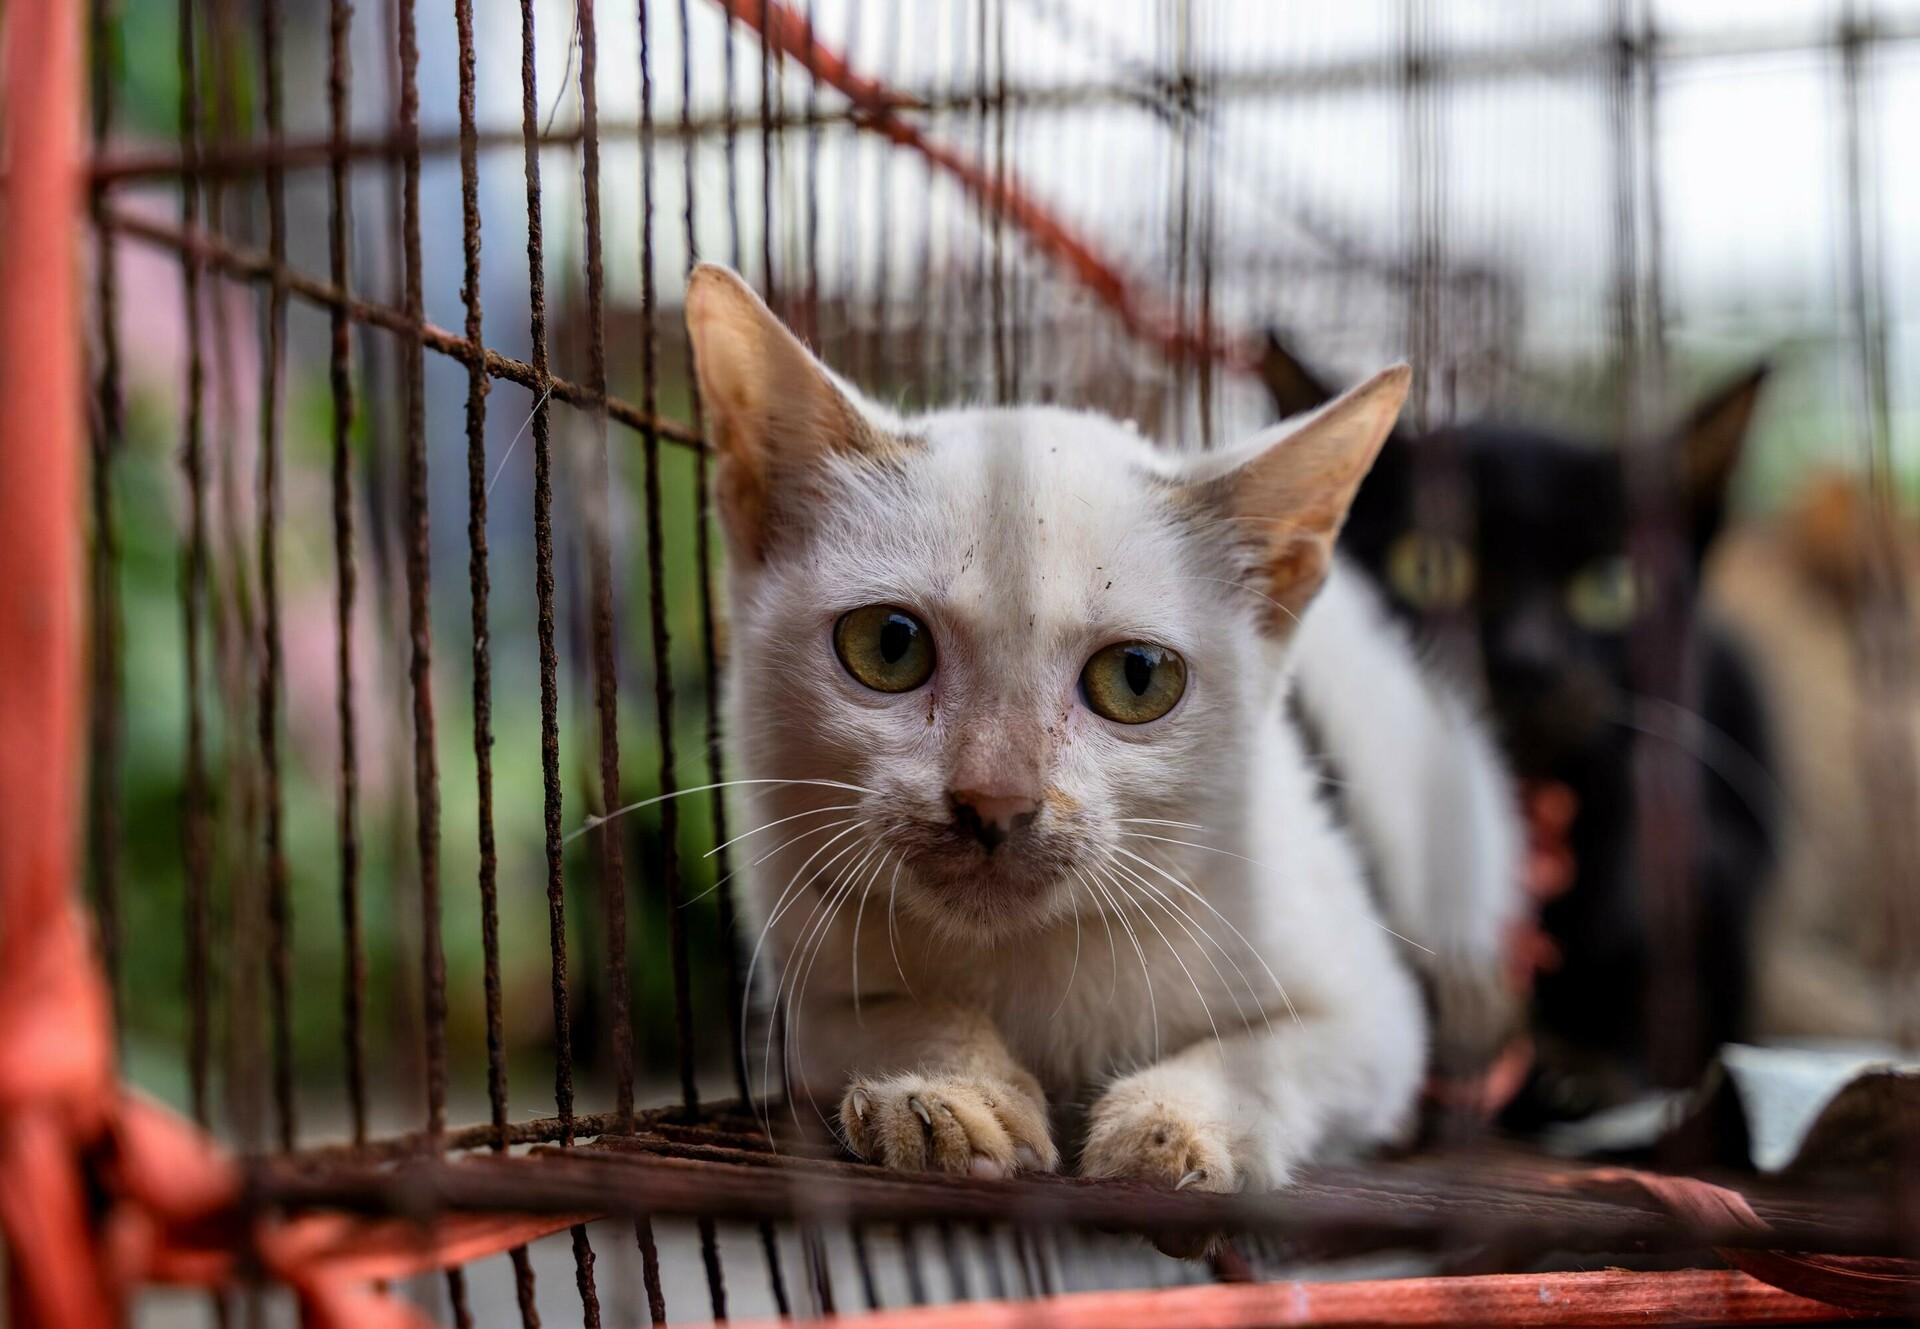 Cats in a cage at a slaughterhouse